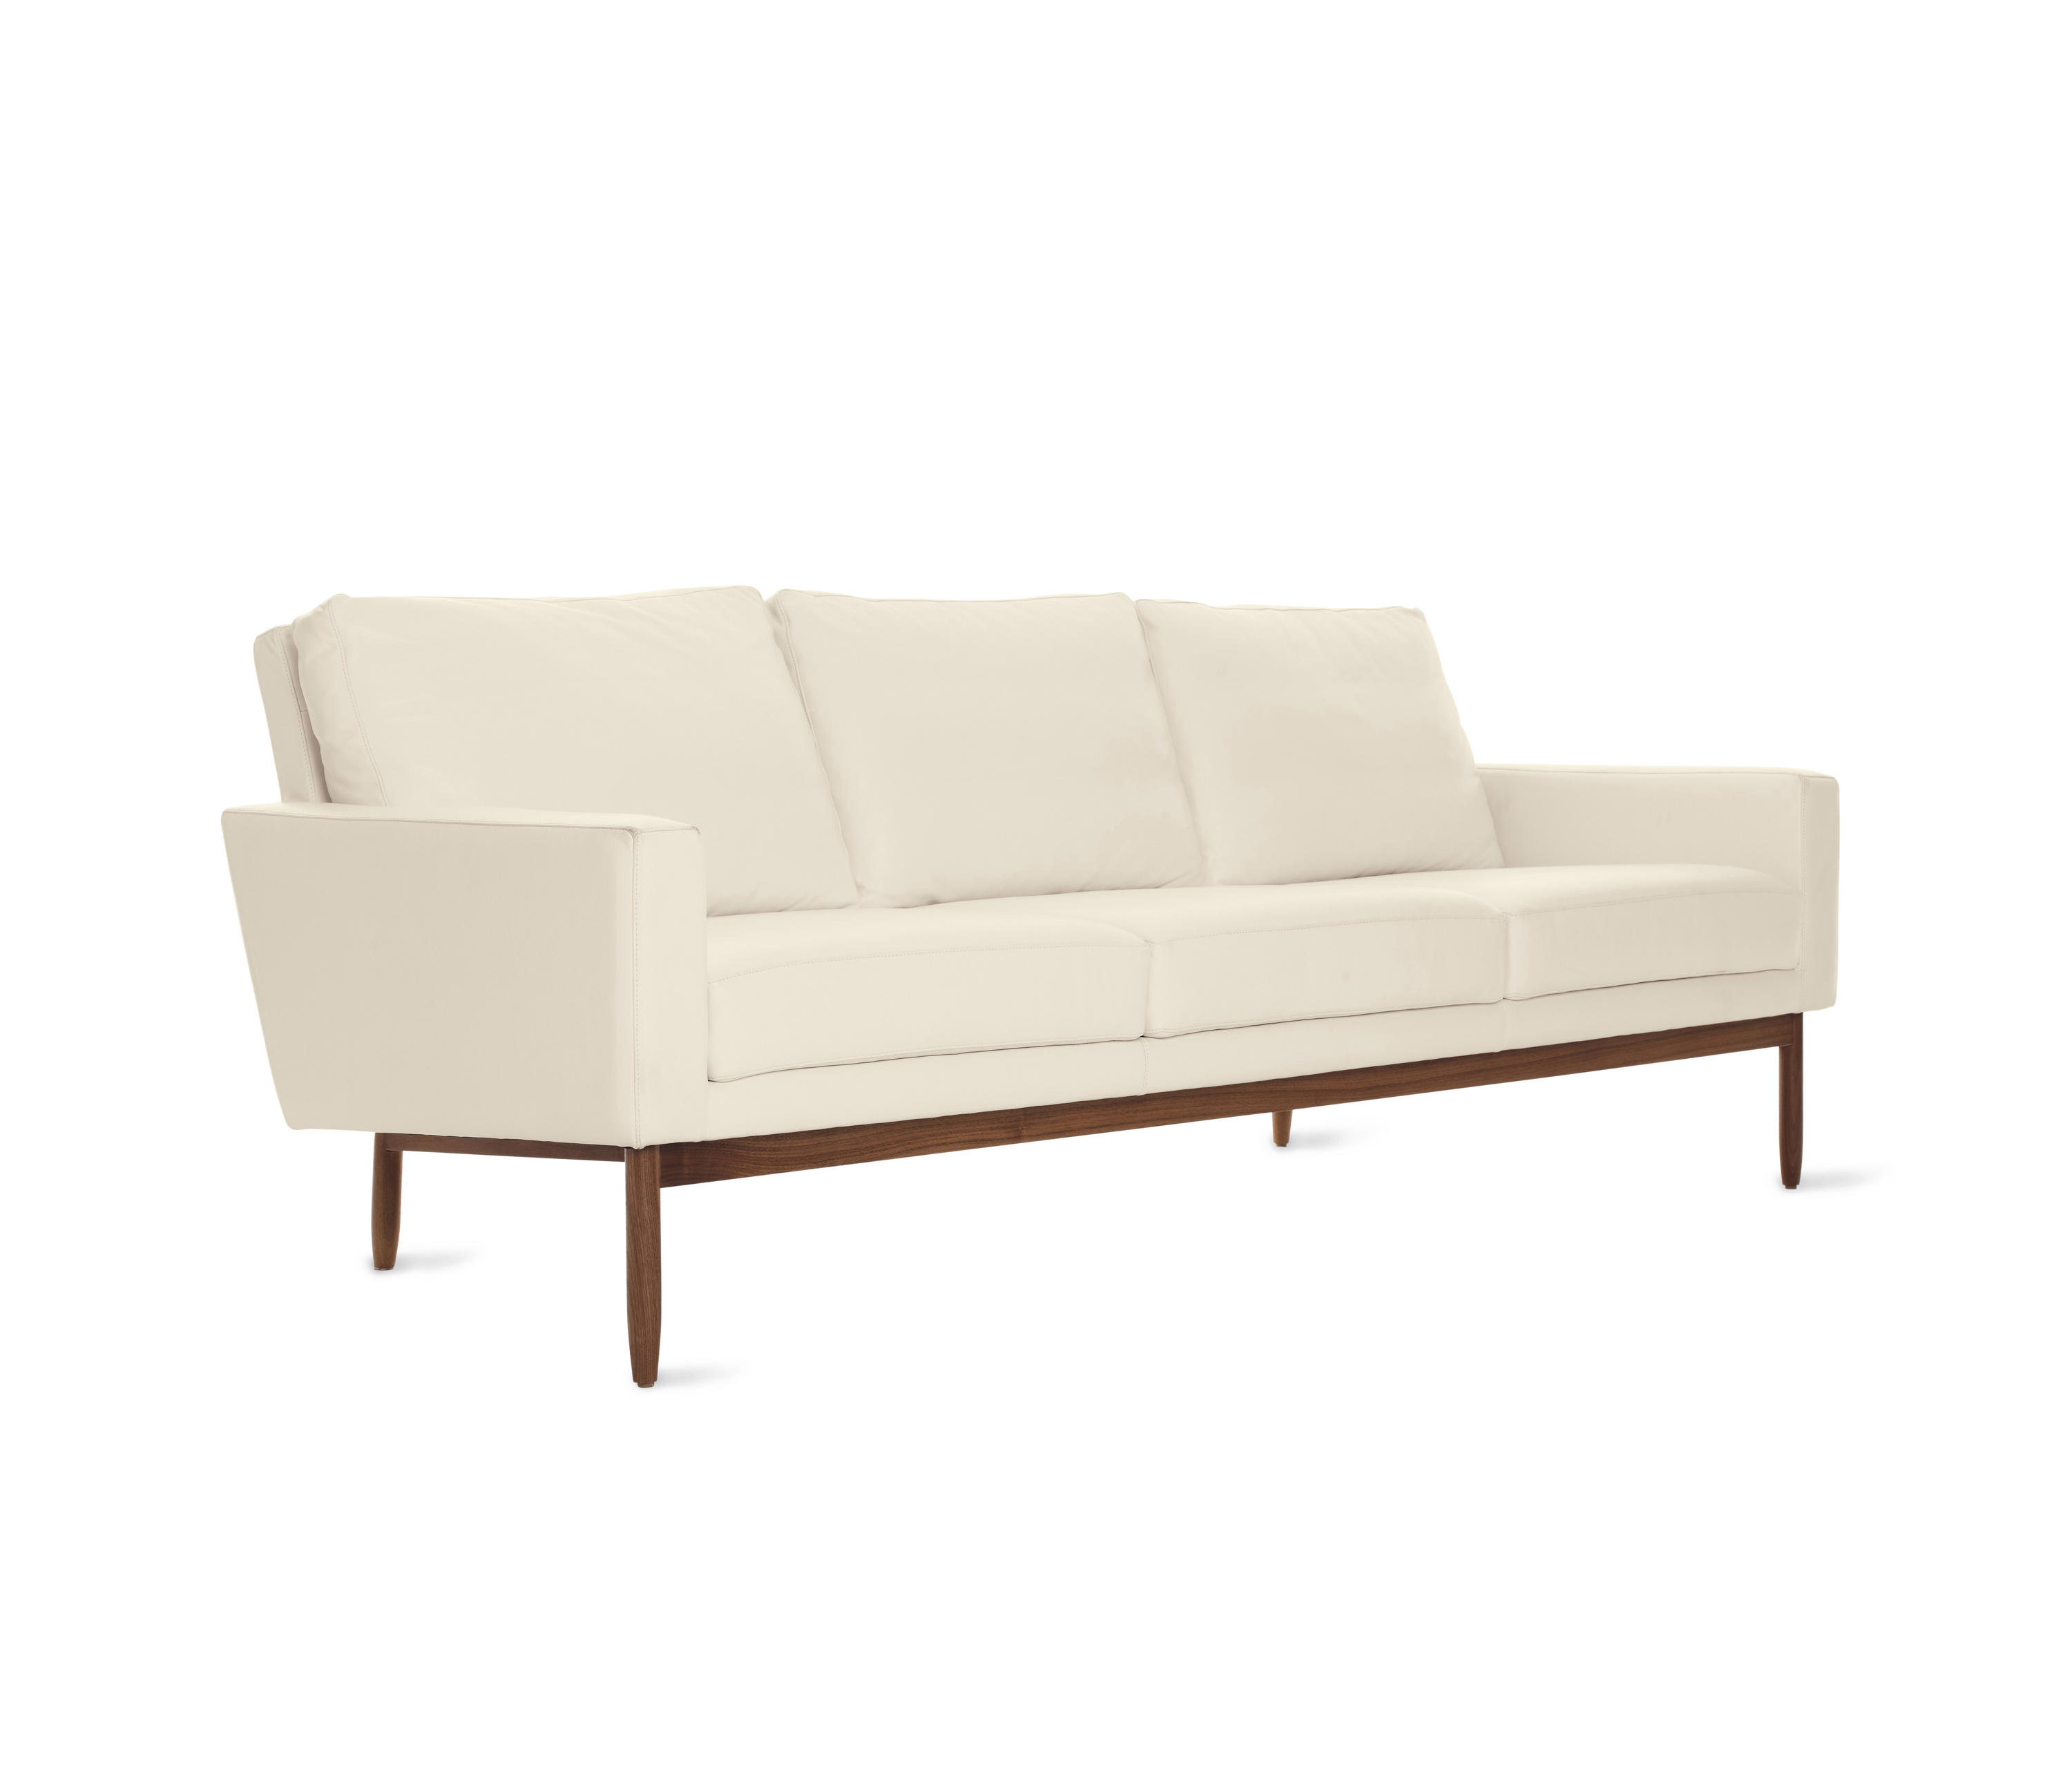 Raleigh sofa in leather sofas from design within reach for Sectional sofas raleigh